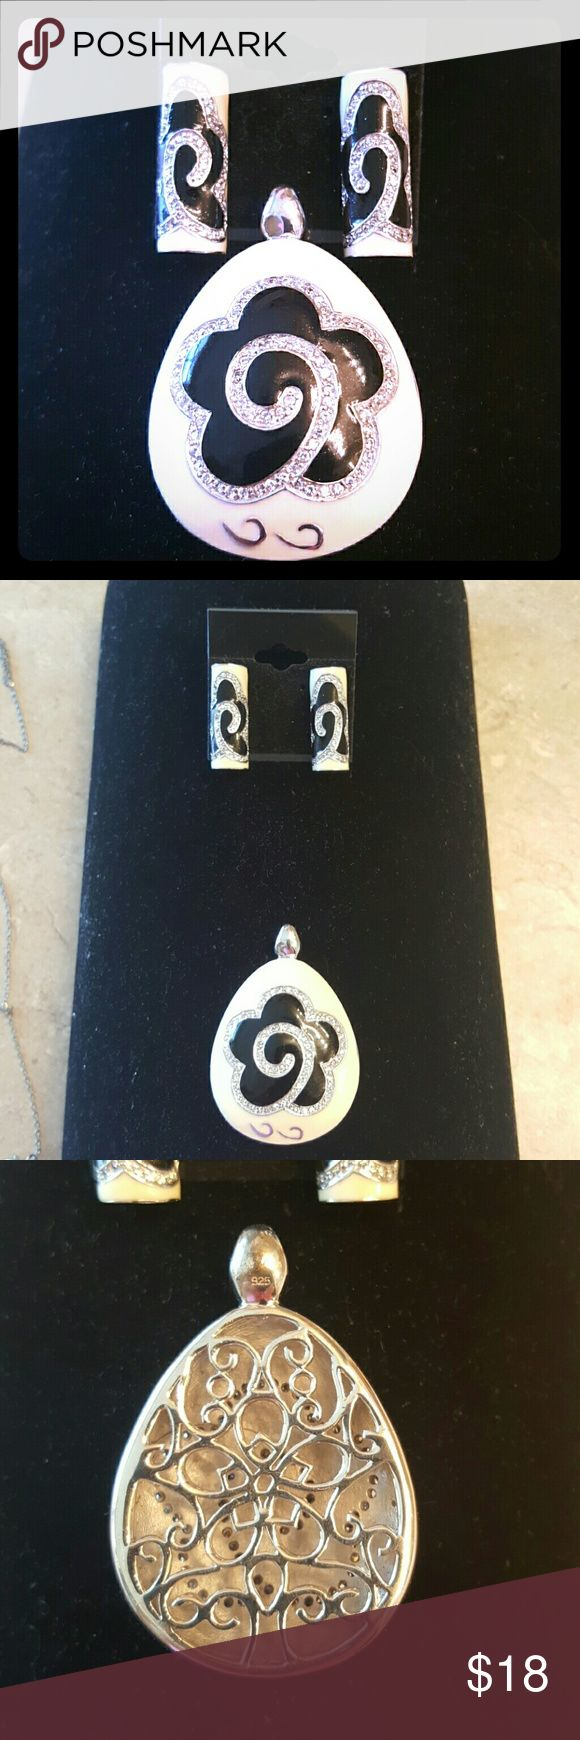 "Earrings with Pendant This set is from QVC quality workmanship.  No nice chain to go with it.  Pendant is 2"" long and 1.5"" wide.  Earrings are just over 1"" long.  Black and off white enamel on silver.  Lots of inlays Pave ceyatals. Jewelry Earrings"